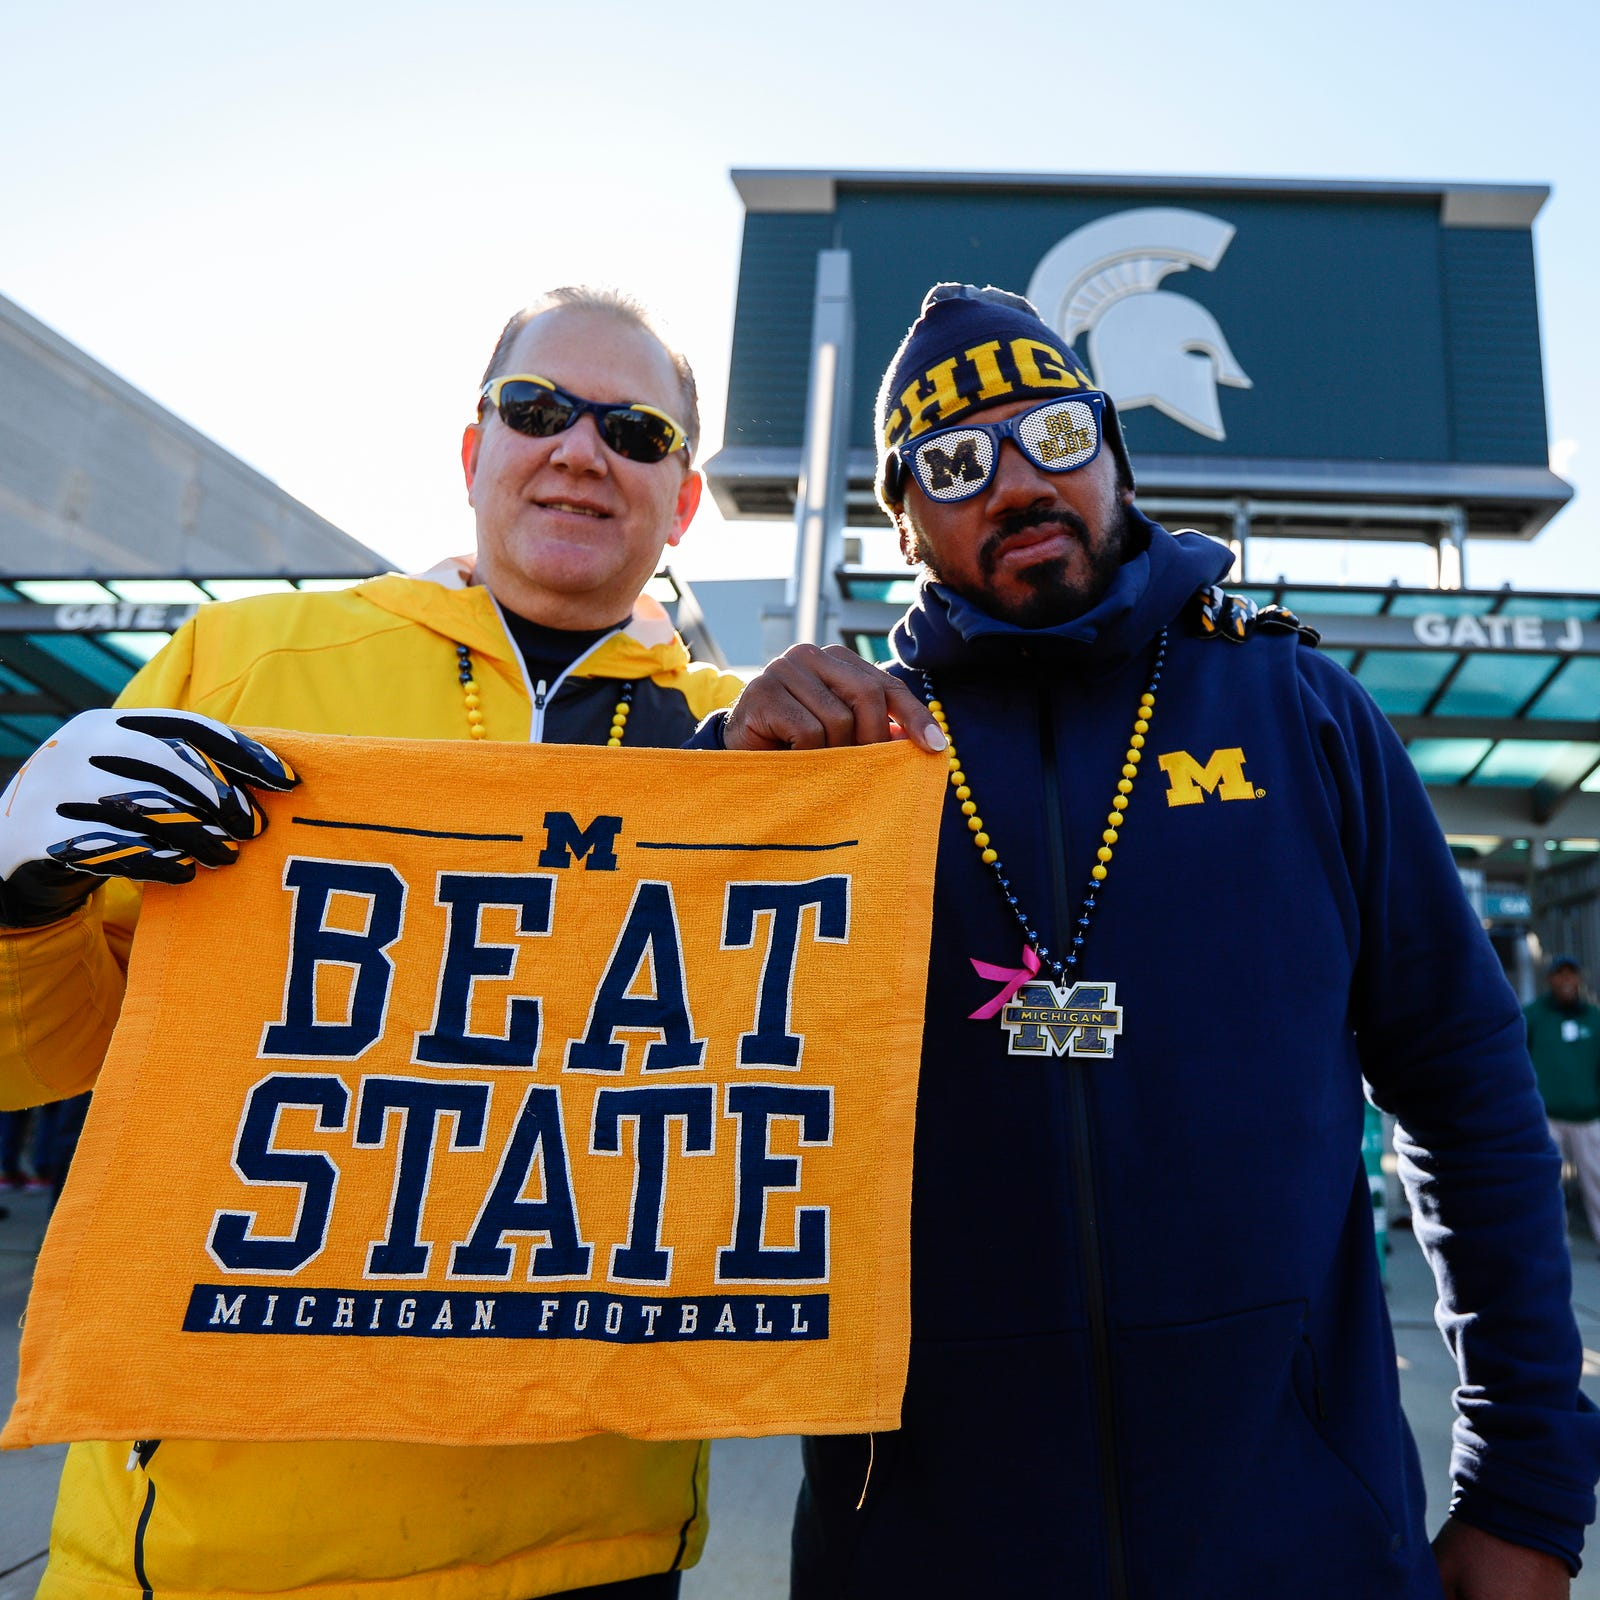 Ray Kopja of Howell, left, and Mike Diggs of Detroit, pose for a photo outside of the Spartan Stadium in East Lansing before the Michigan State game on Saturday, Oct. 20, 2018.